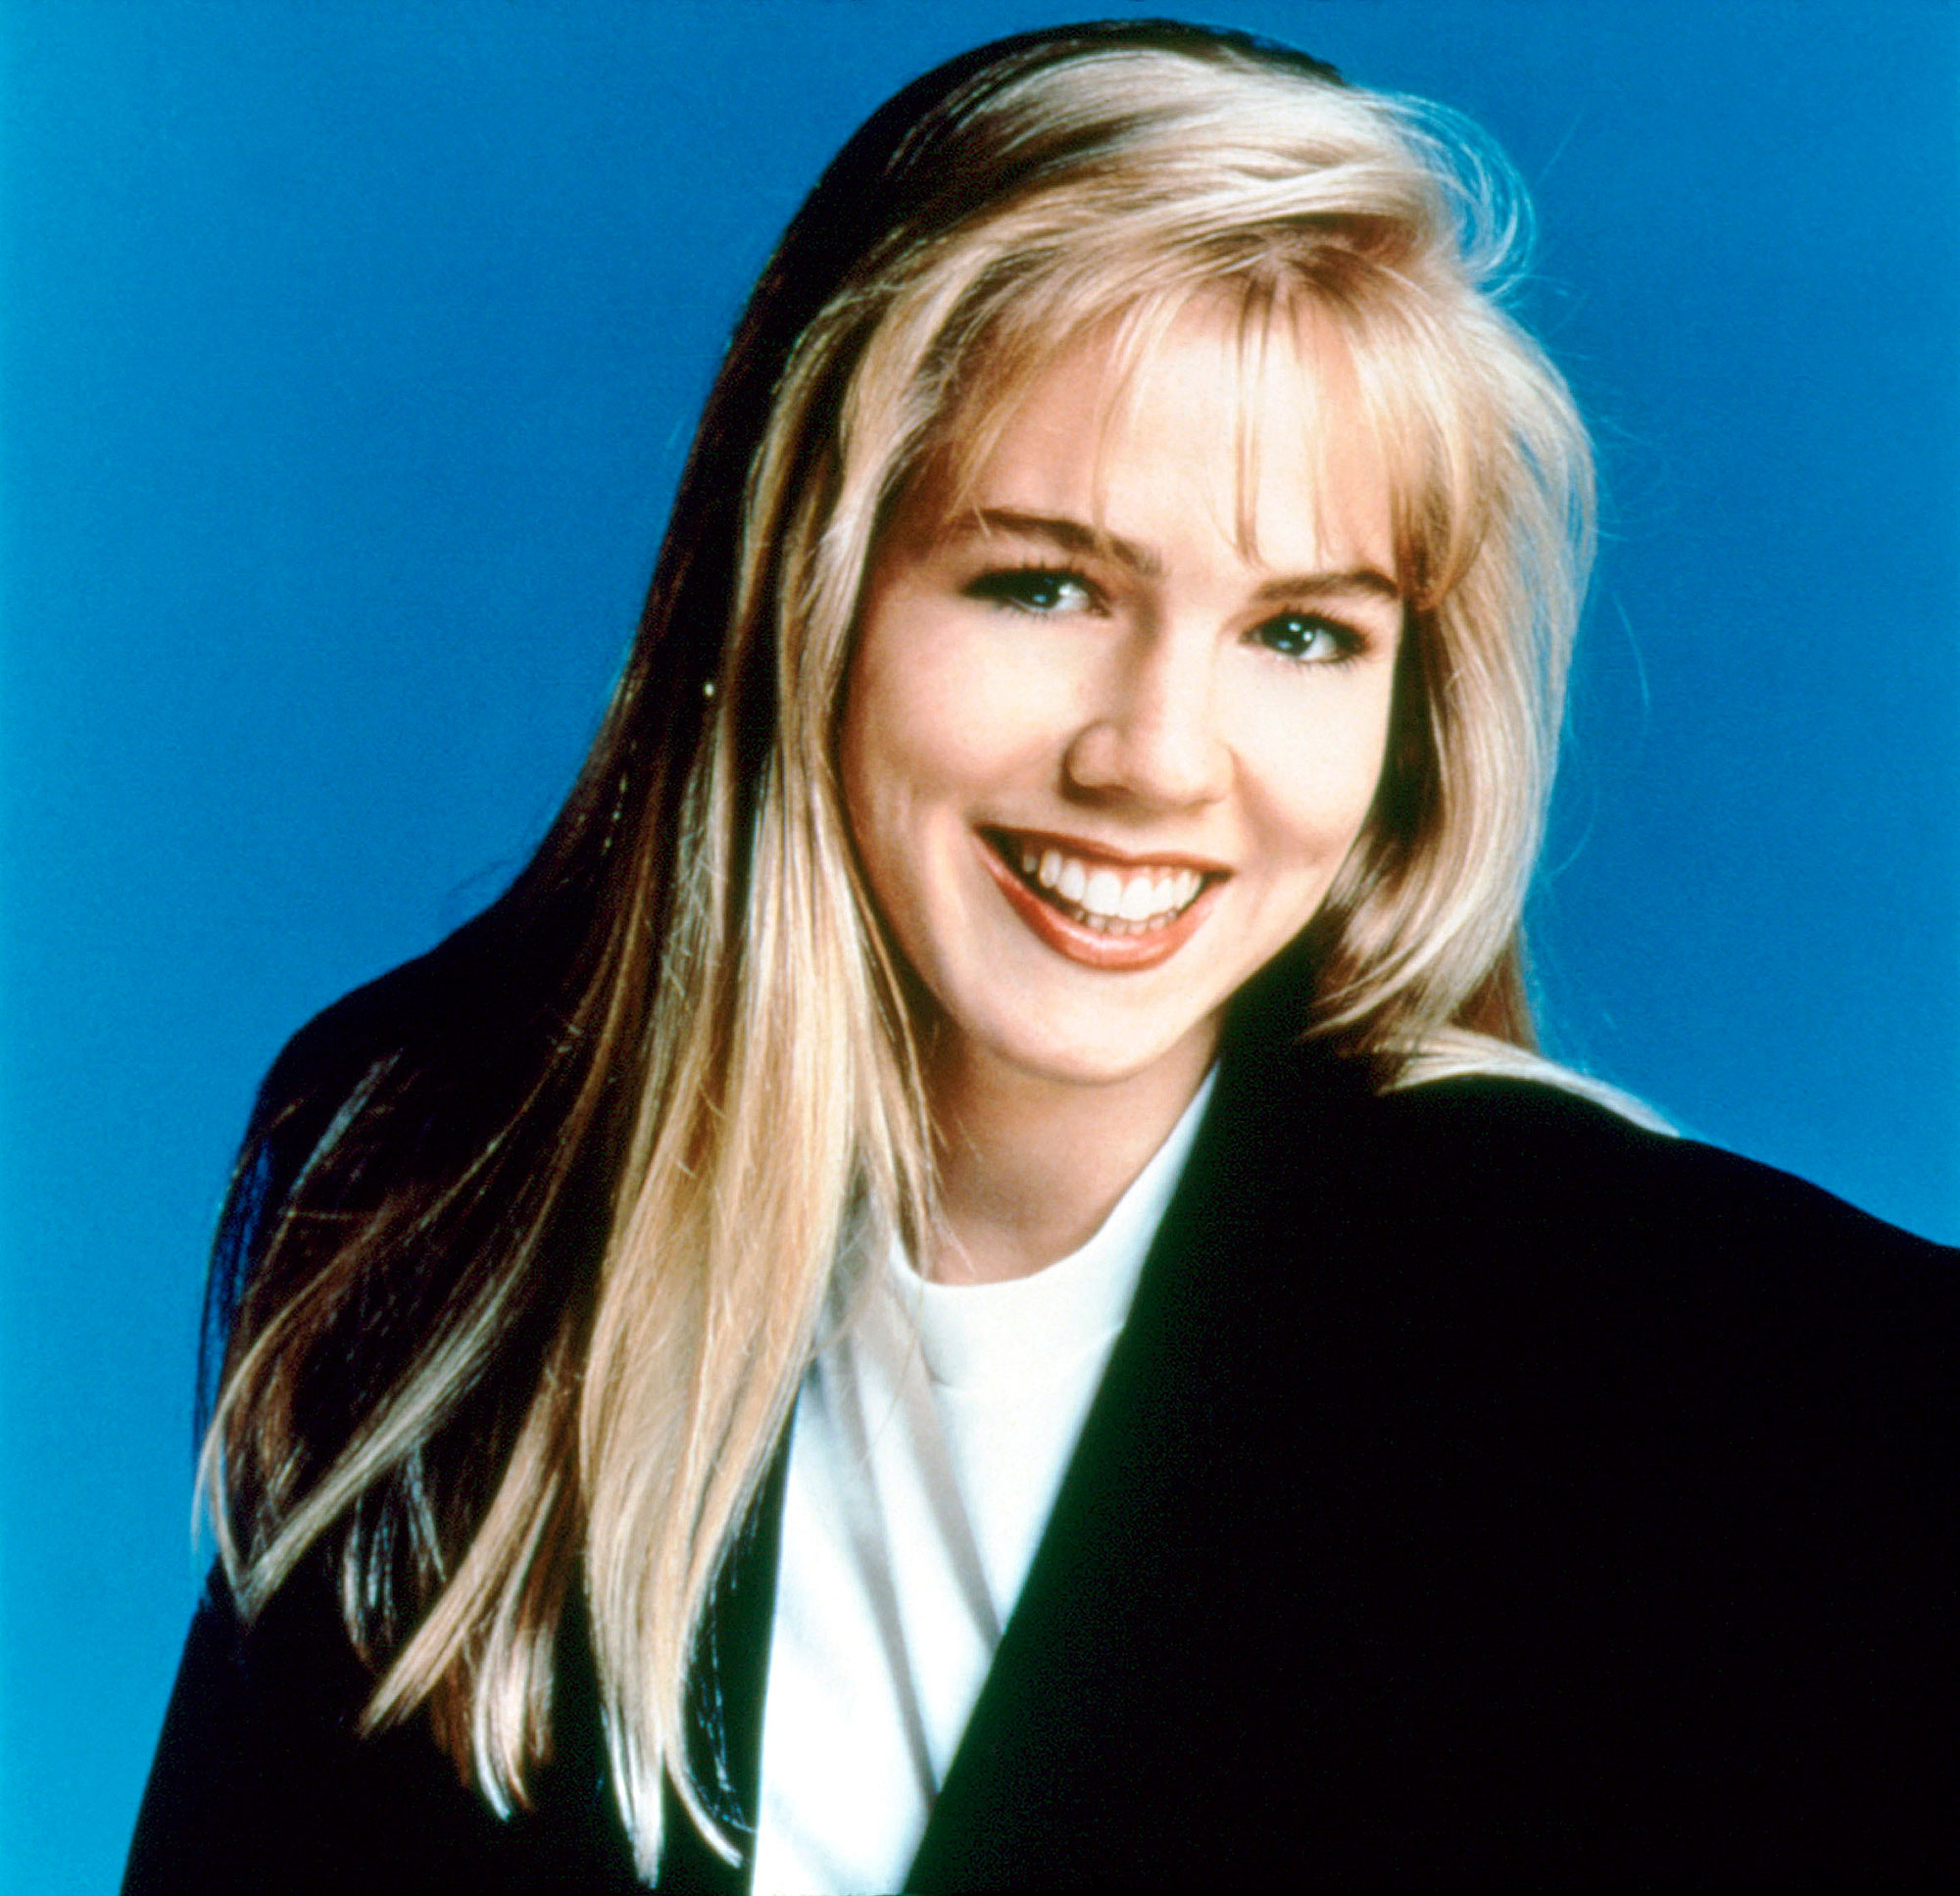 Gallery Overhaul 90210 Then and Now - BEVERLY HILLS 90210, Jennie Garth, (Season 1, 1990), 1990-2000.